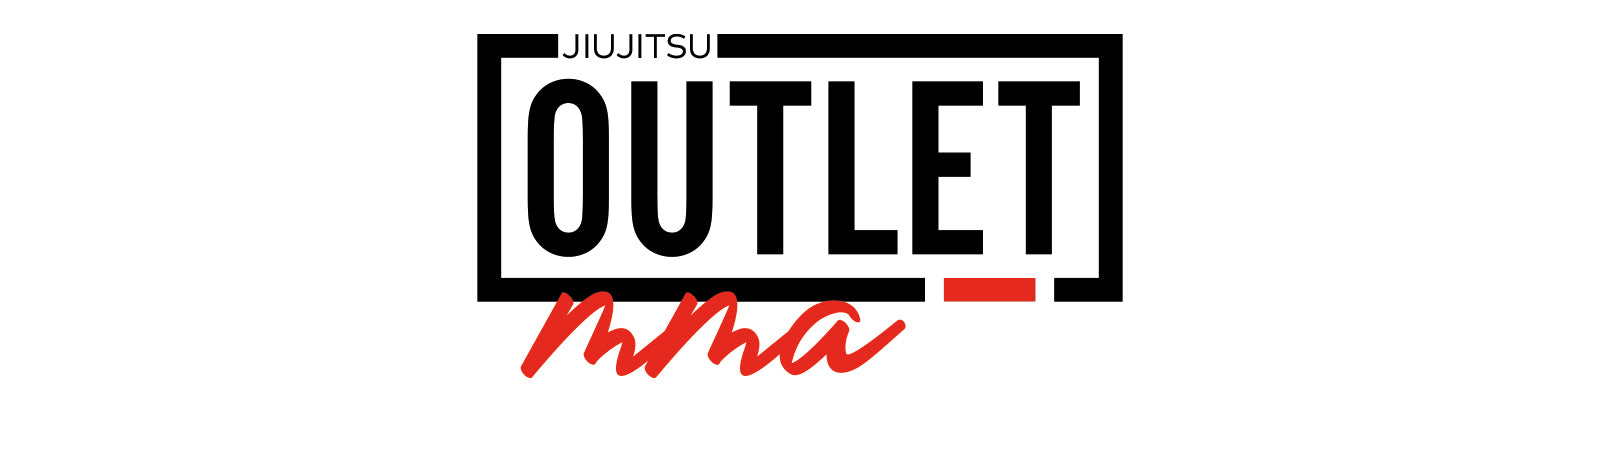 Boxing/MMA outlet